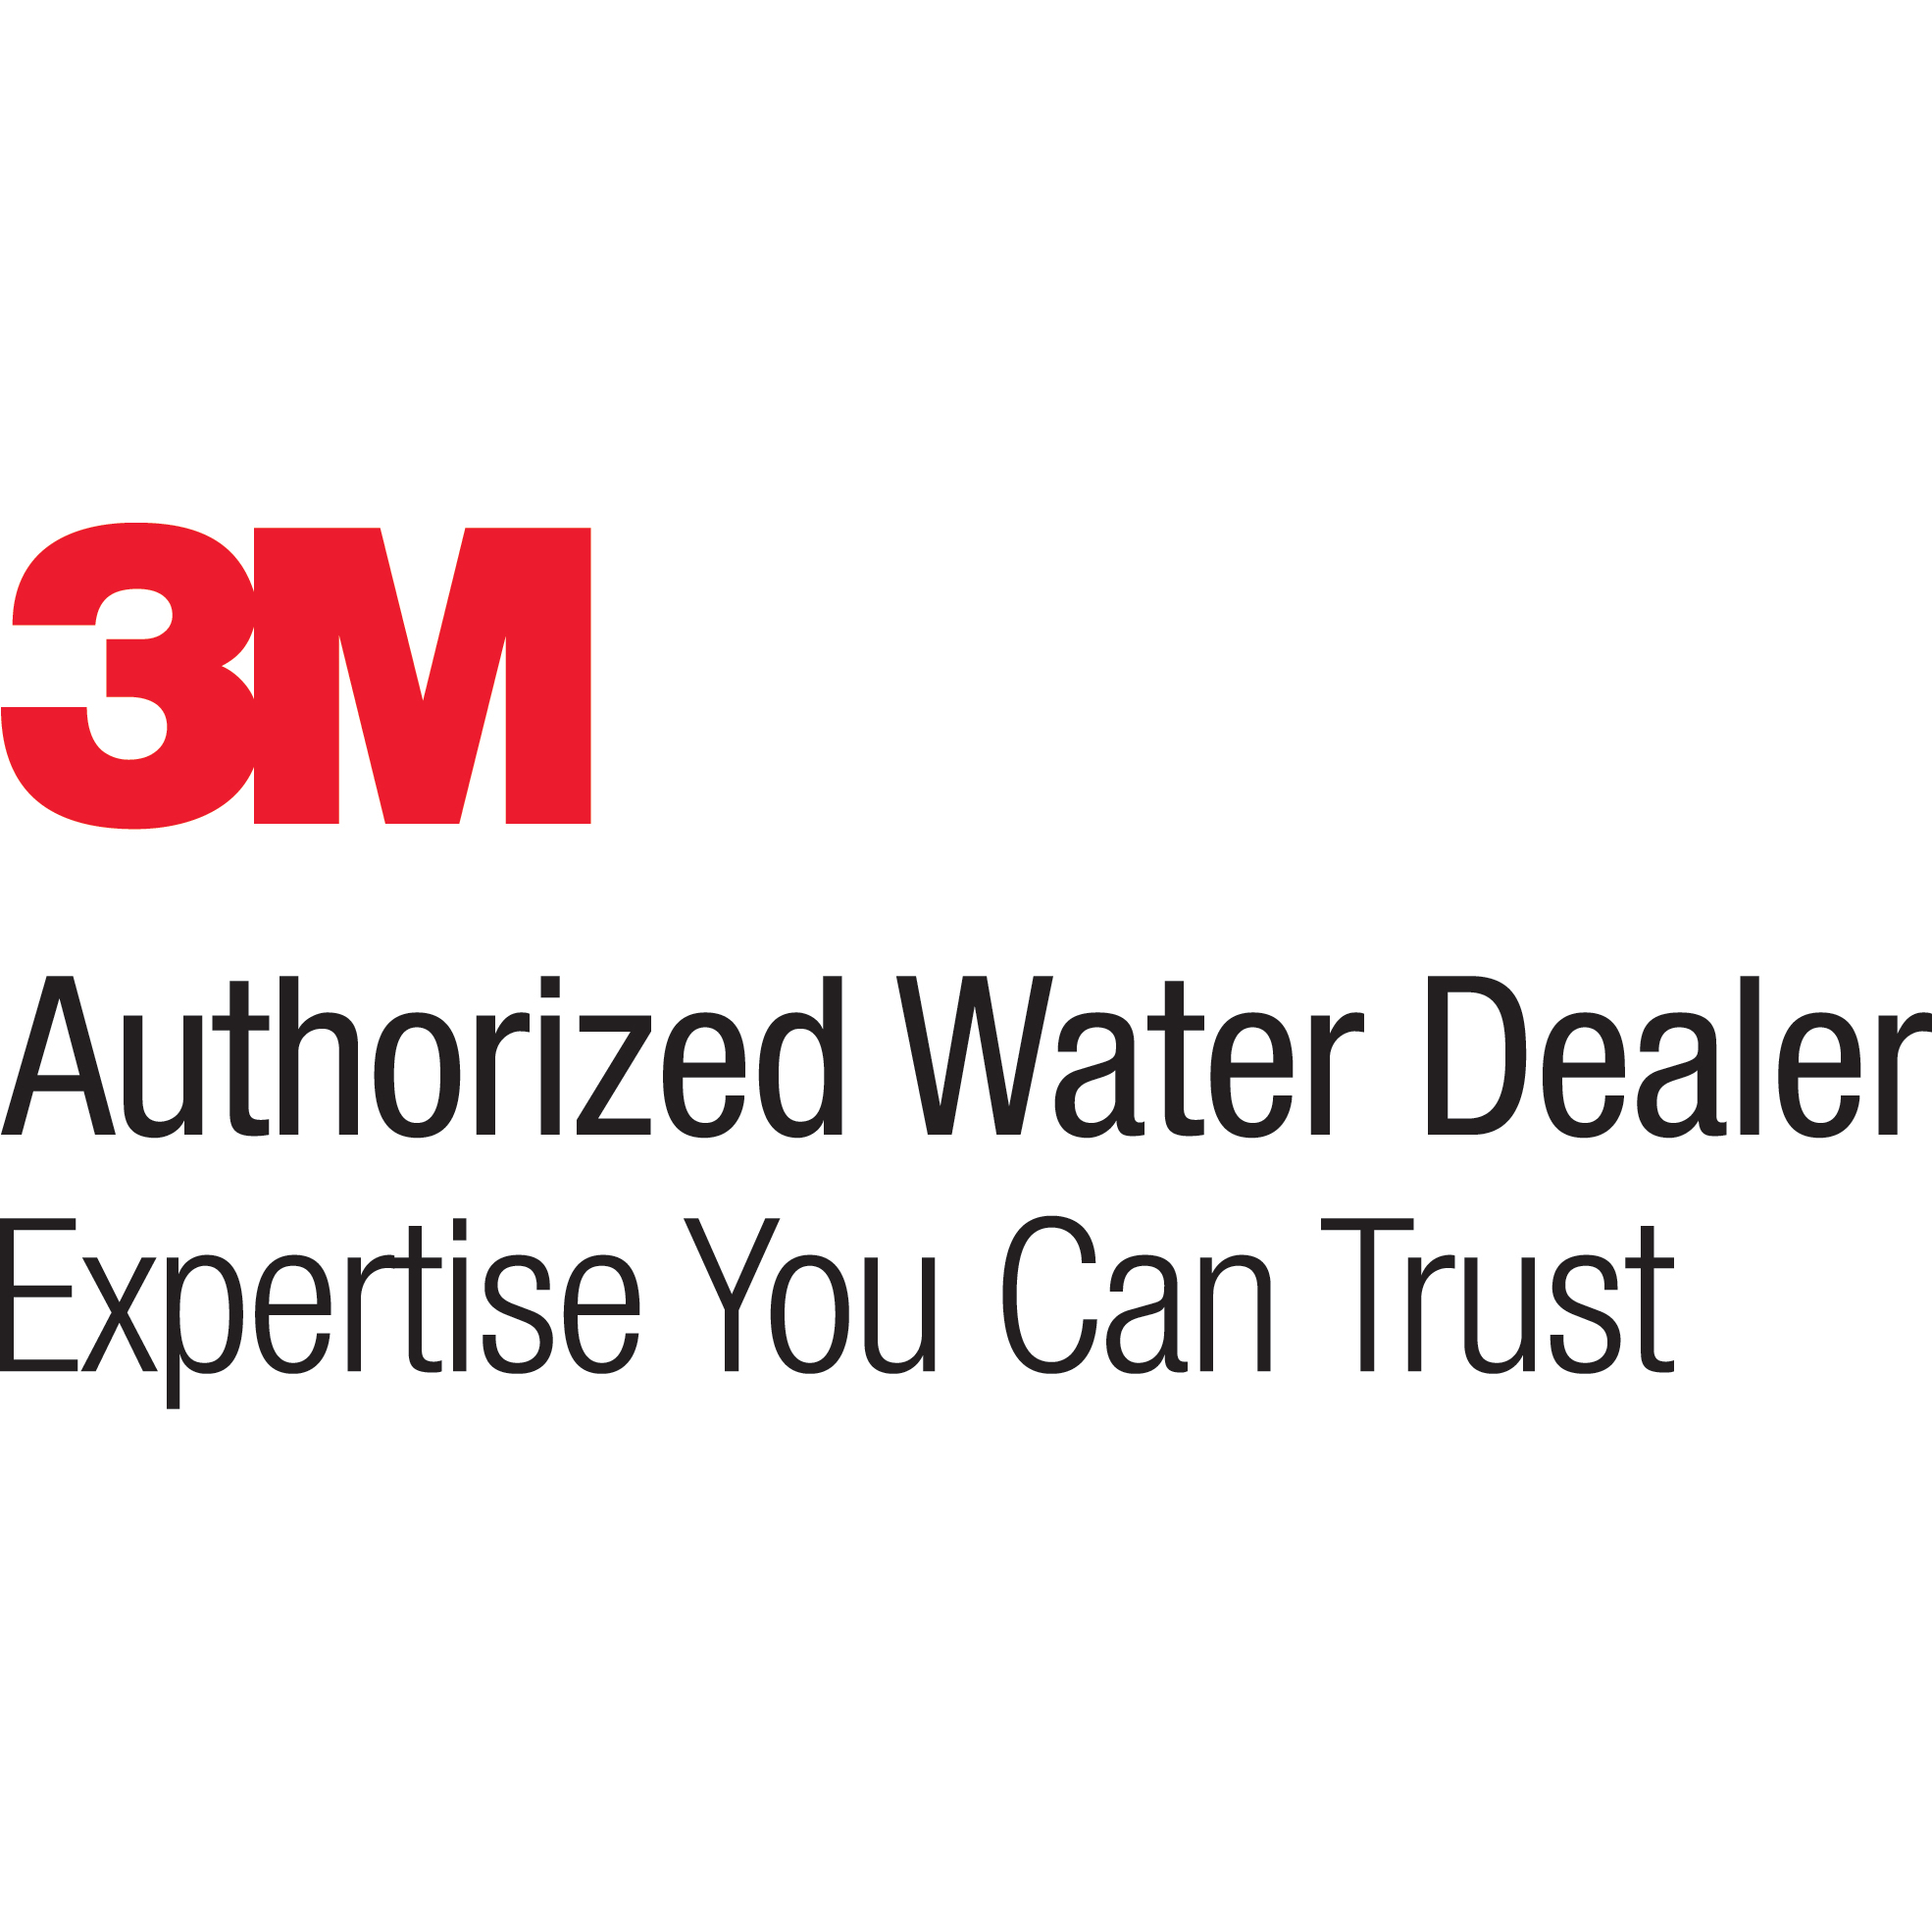 Merles Water Conditioning, Your Local 3M Authorized Water Dealer